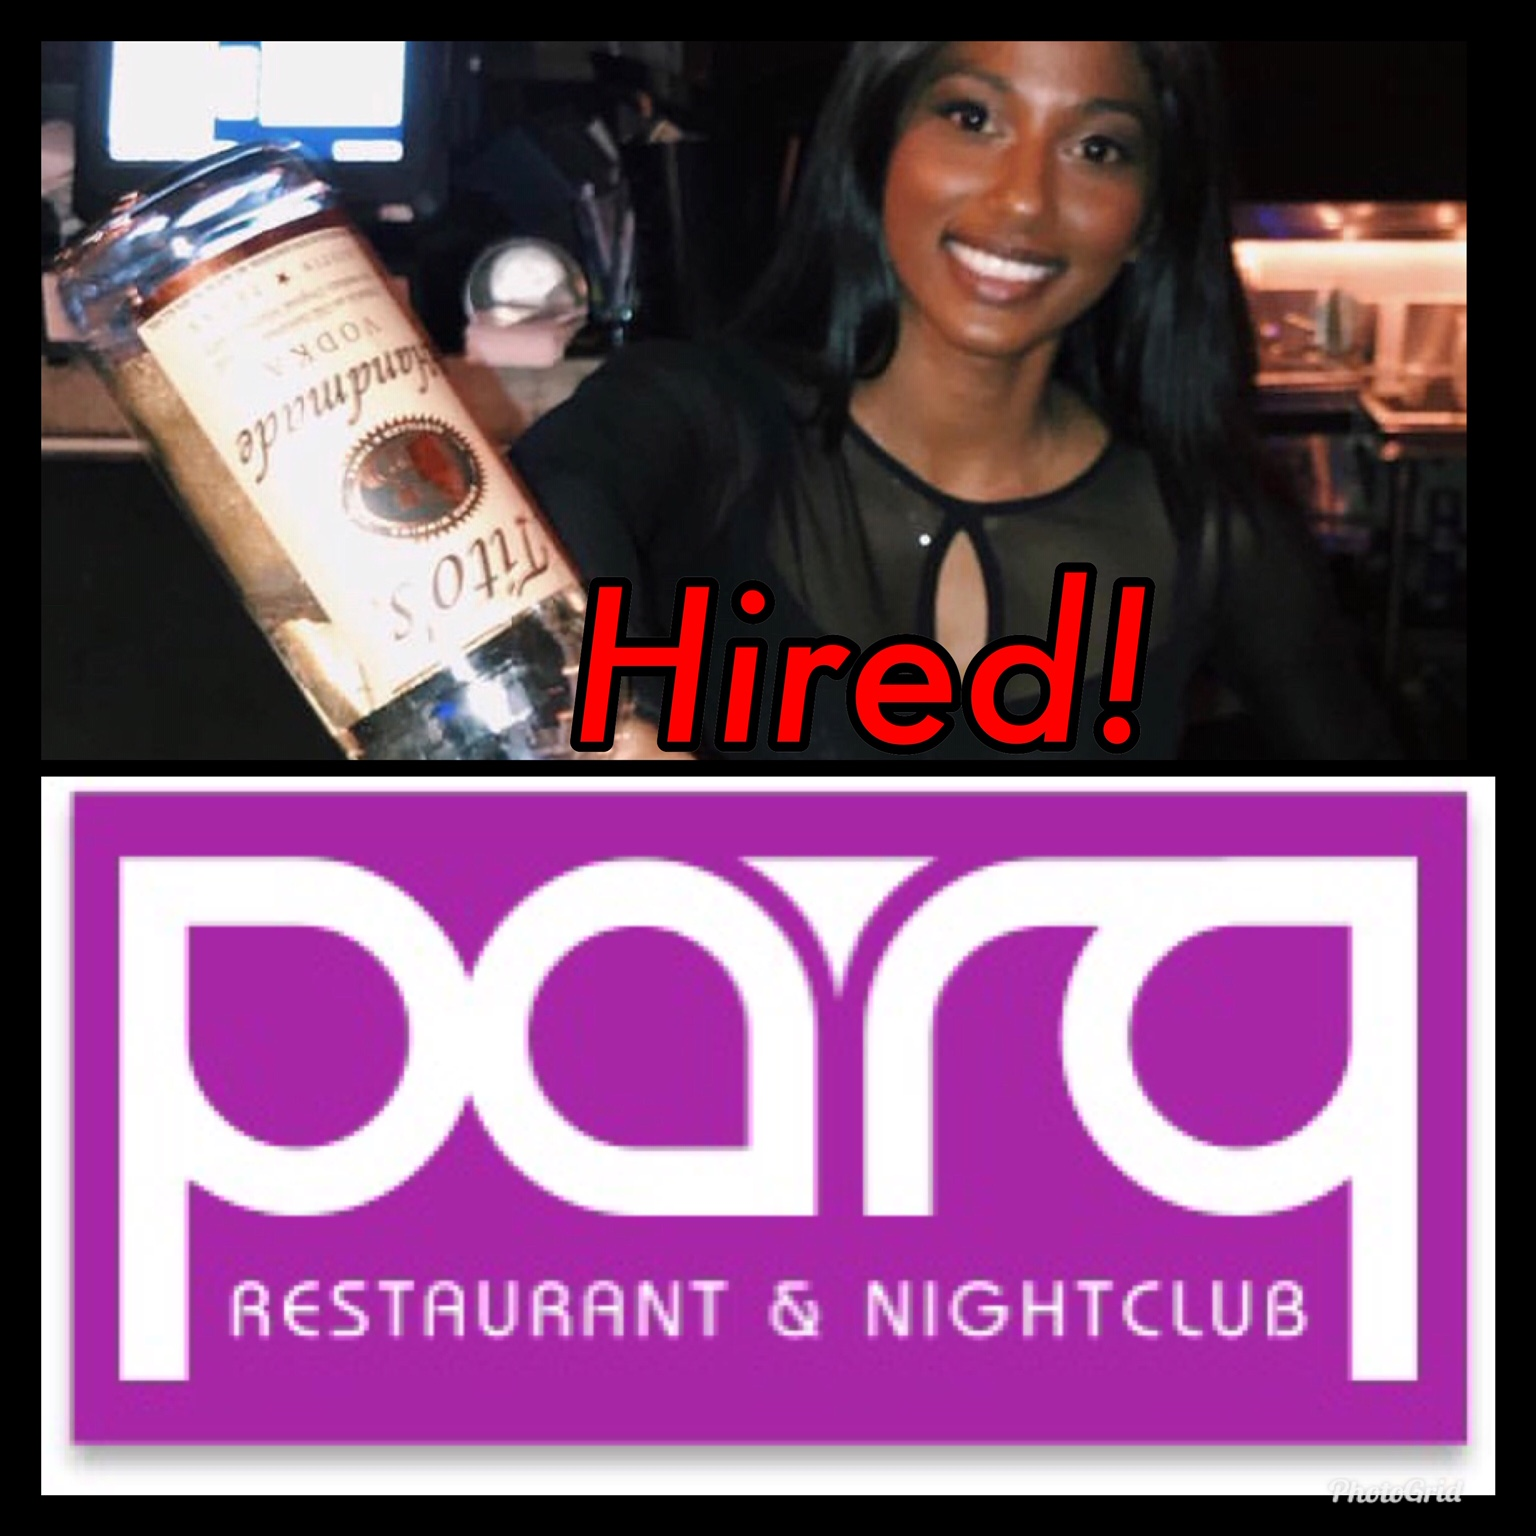 Sitara Told us she wanted to work at PARQ Nightclub, we got her there in 2 weeks through our Bartender Staffing Agency. Hard work pays off at GBS!